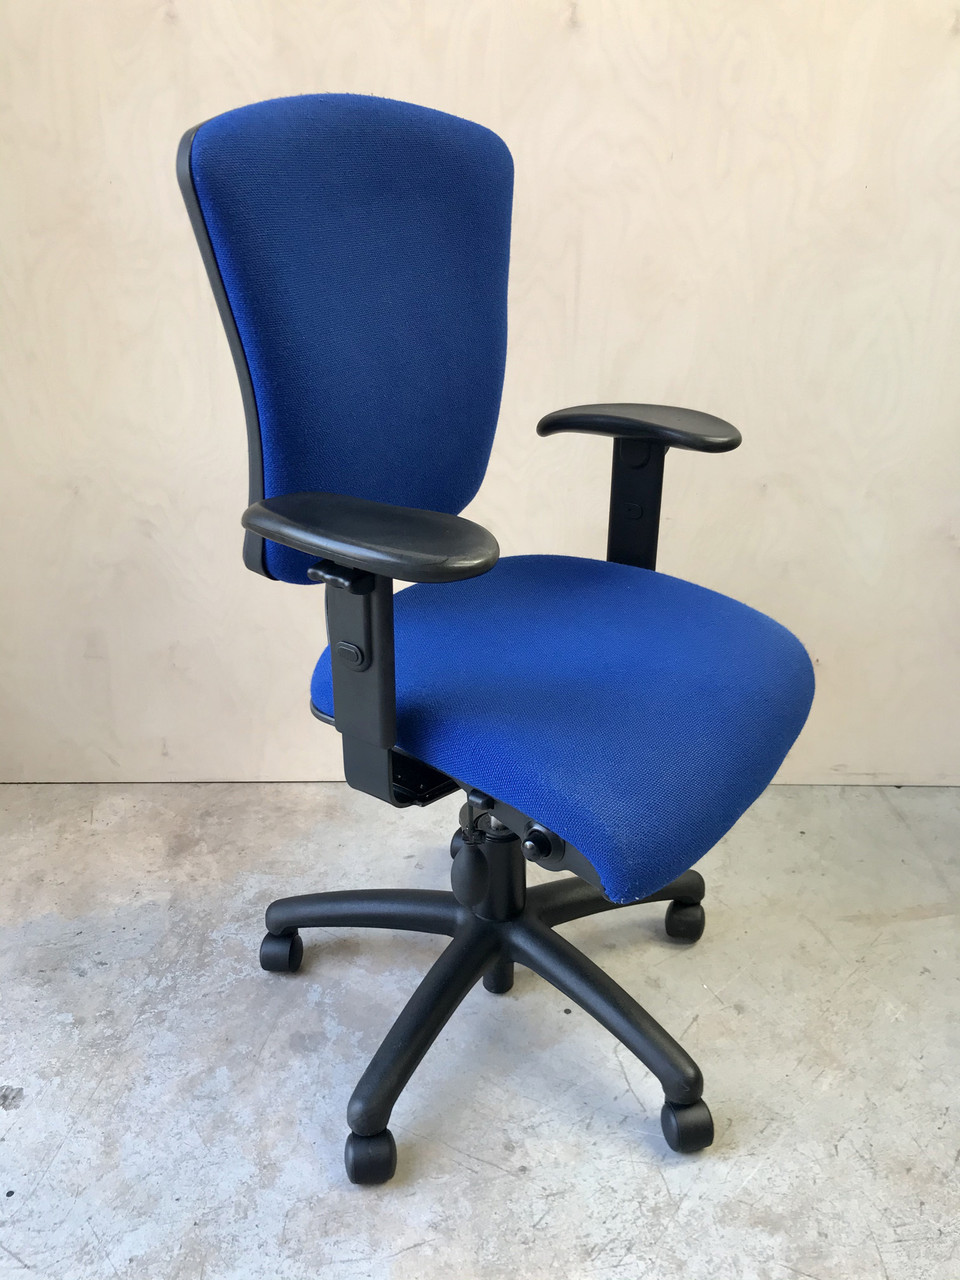 High back task chair in Blue fabric - UC03